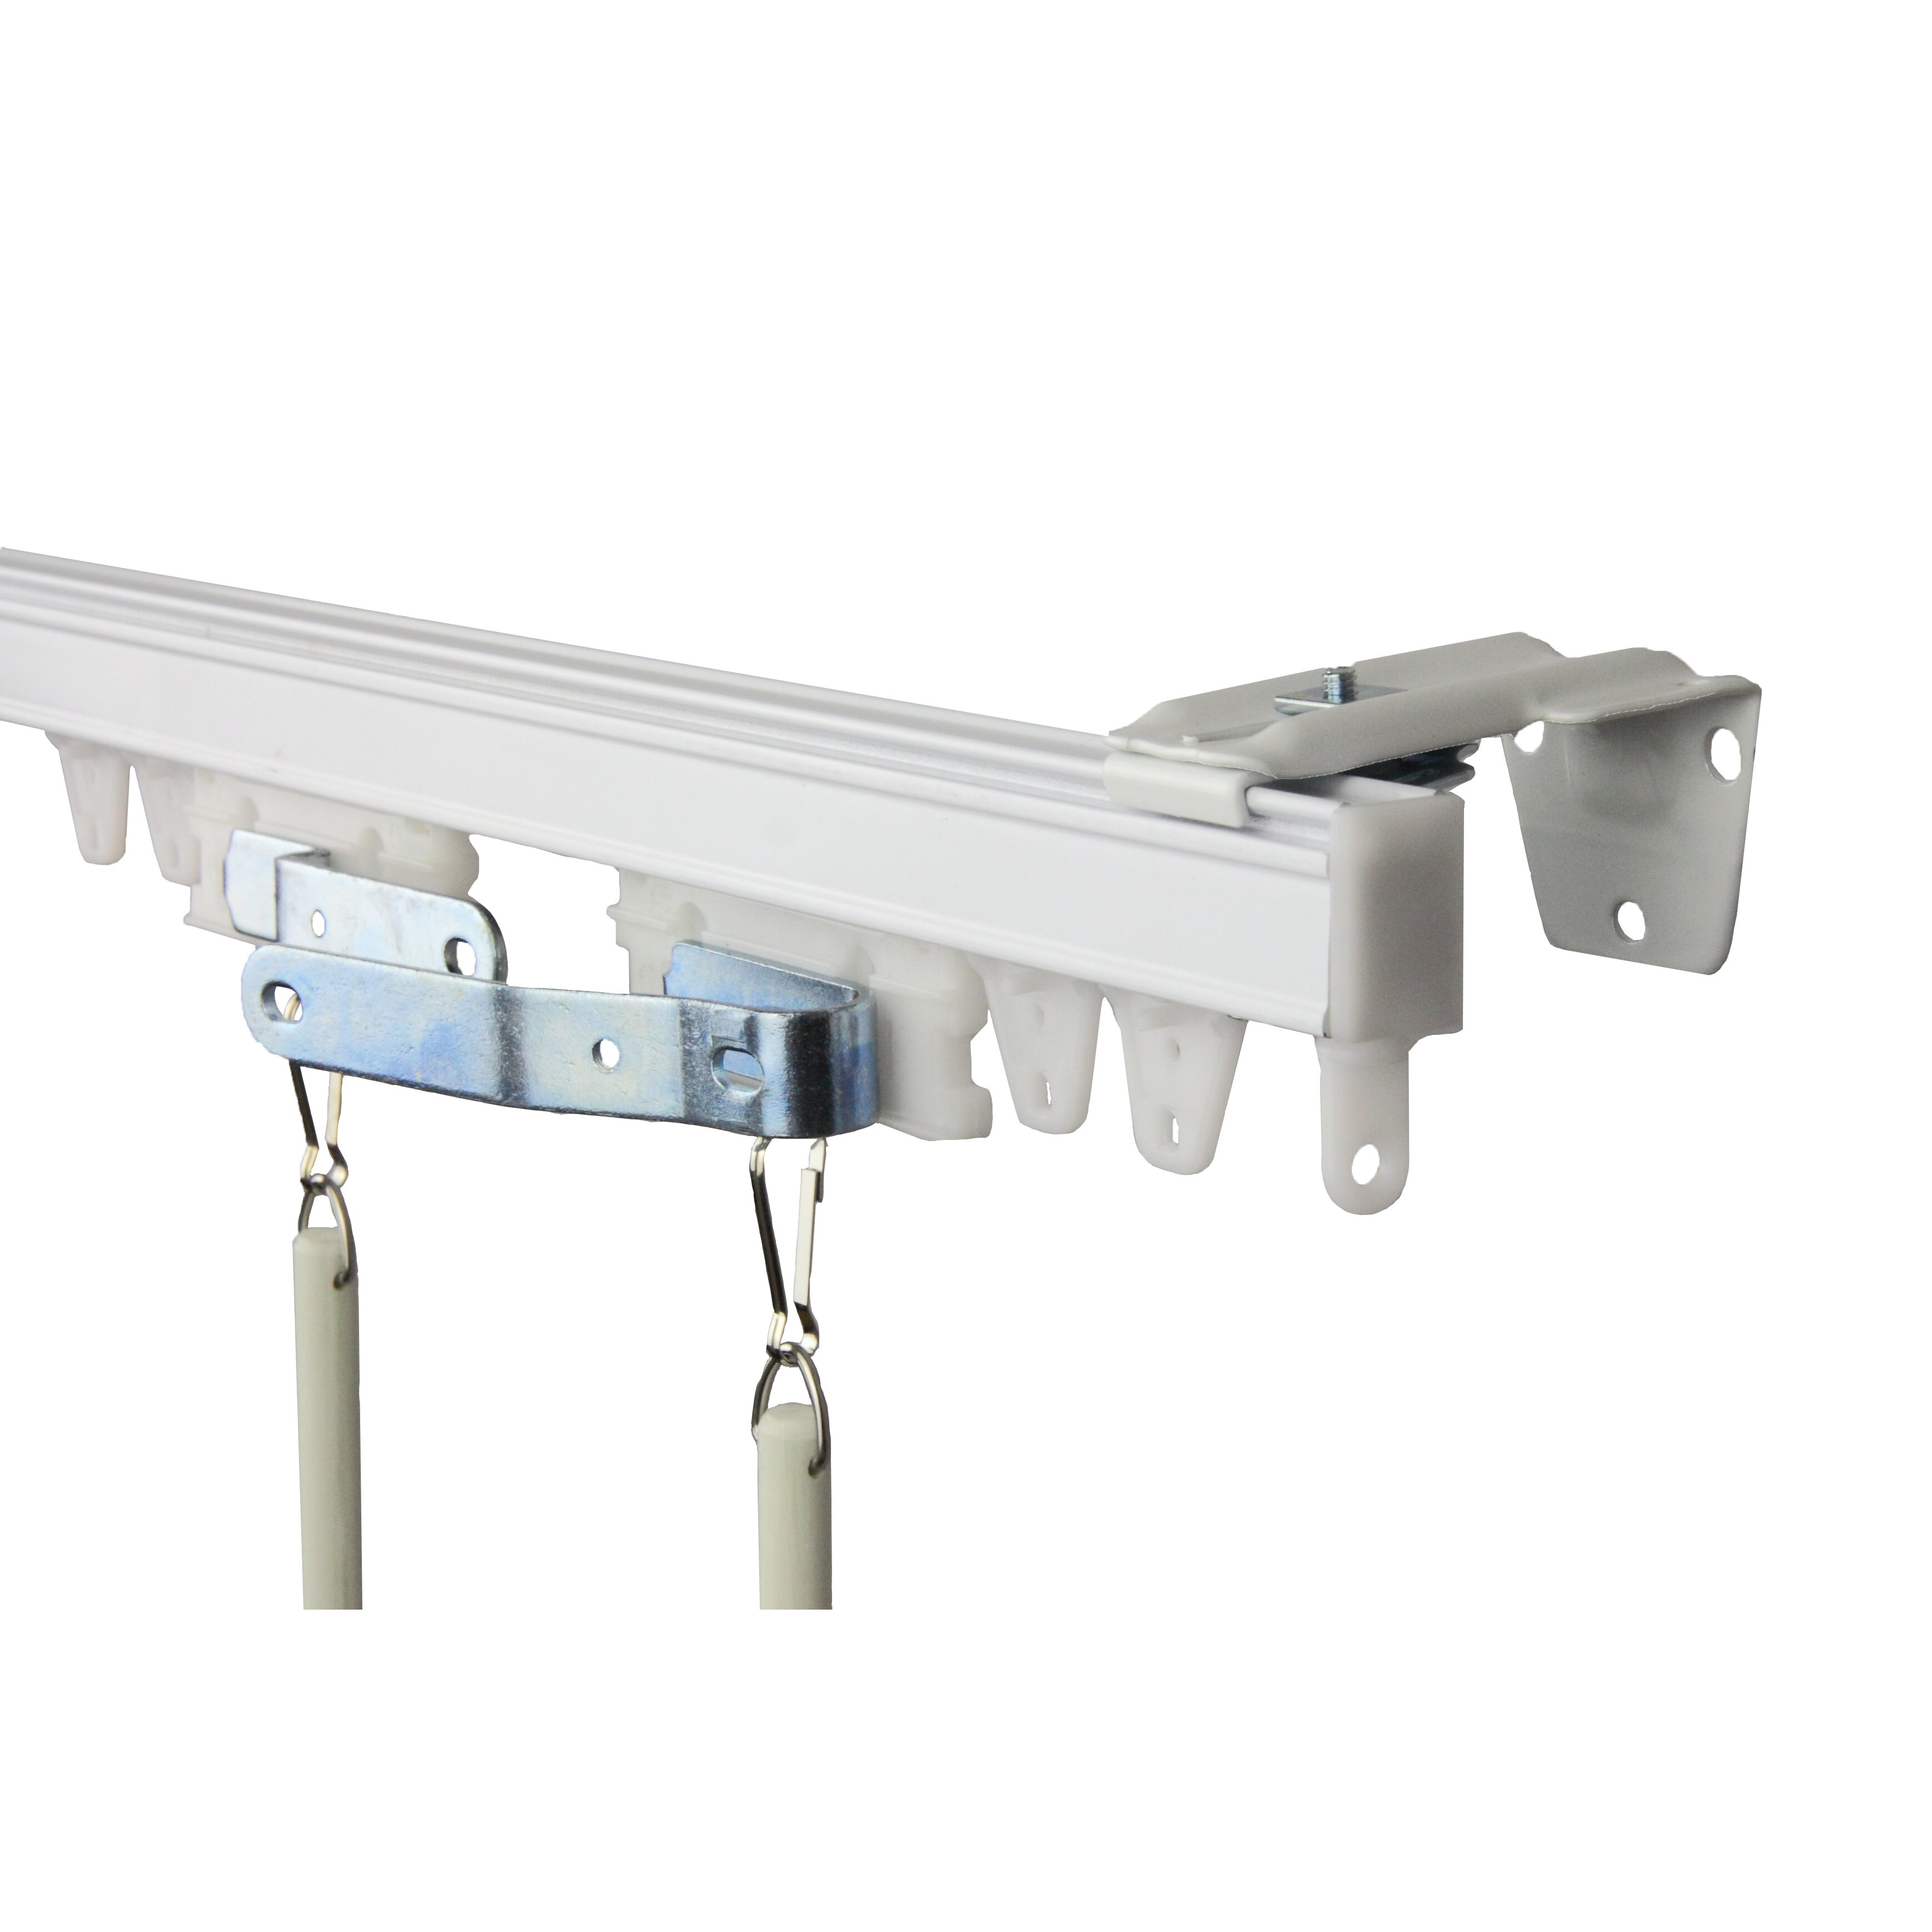 Rod Desyne Commercial Double Curtain Track Kit & Reviews